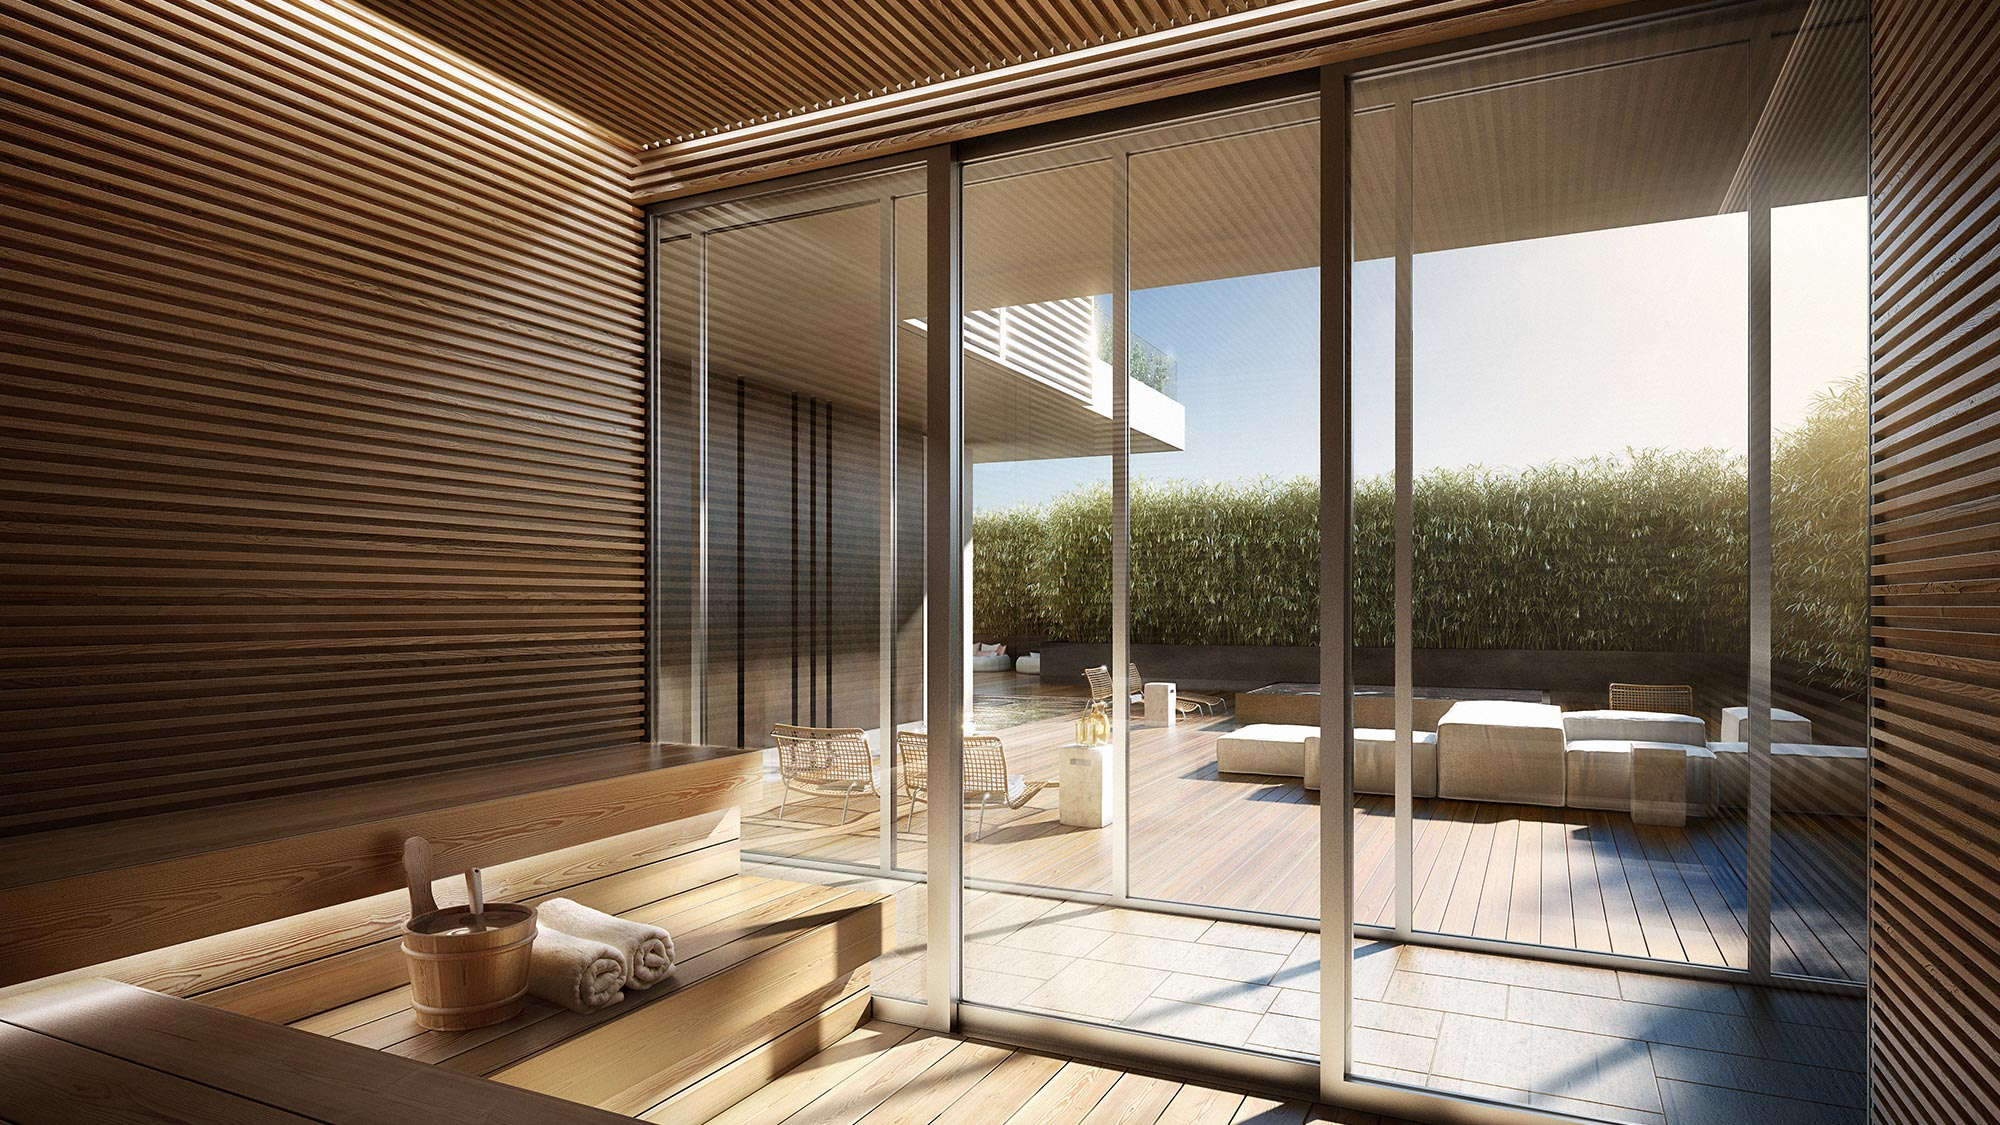 Tranquil Spa at the Miami luxury condos of The Ritz-Carlton Residences, Miami Beach